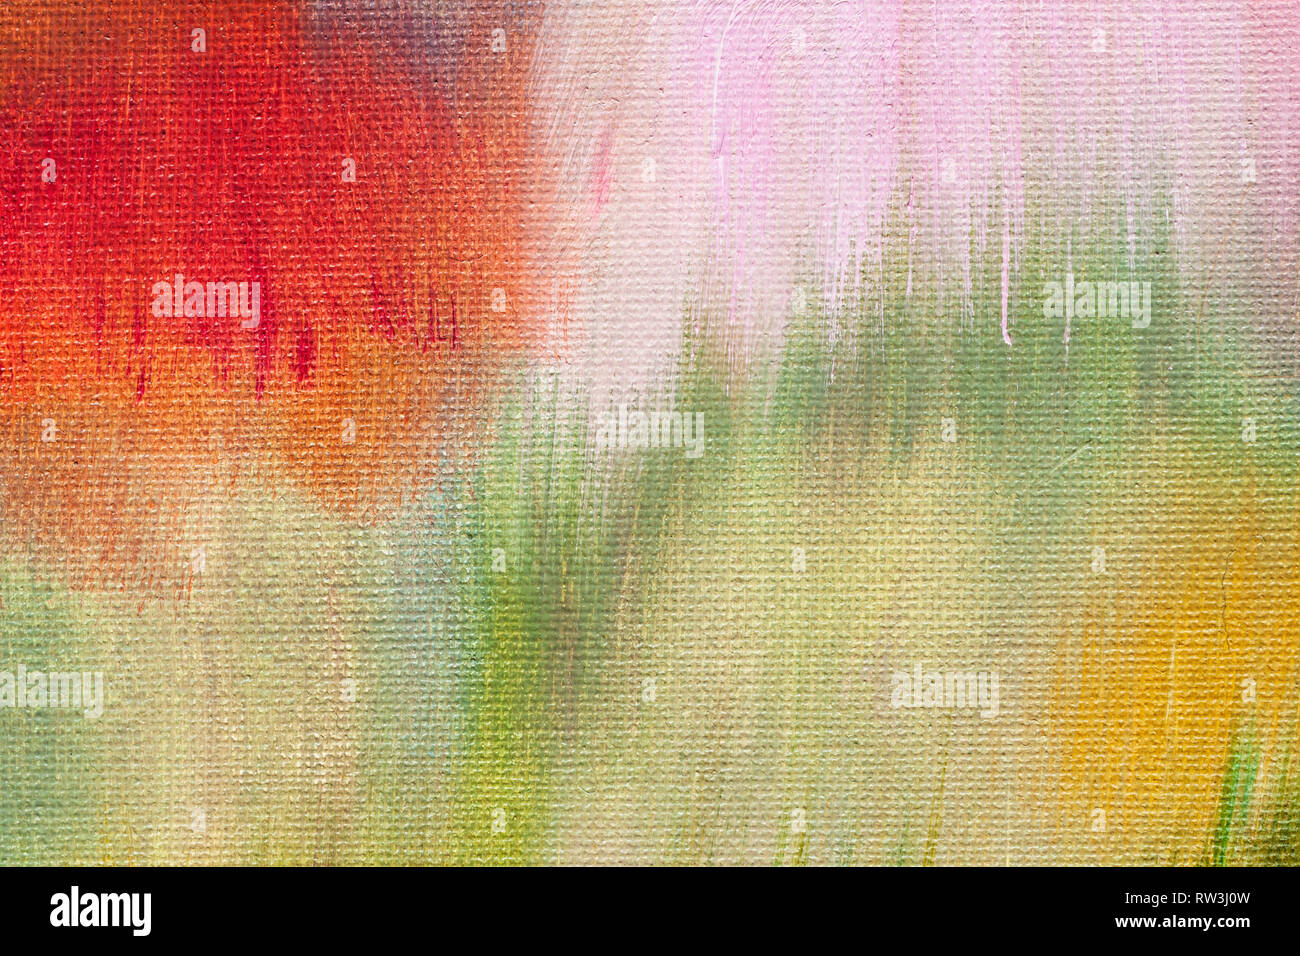 abstract hand made background